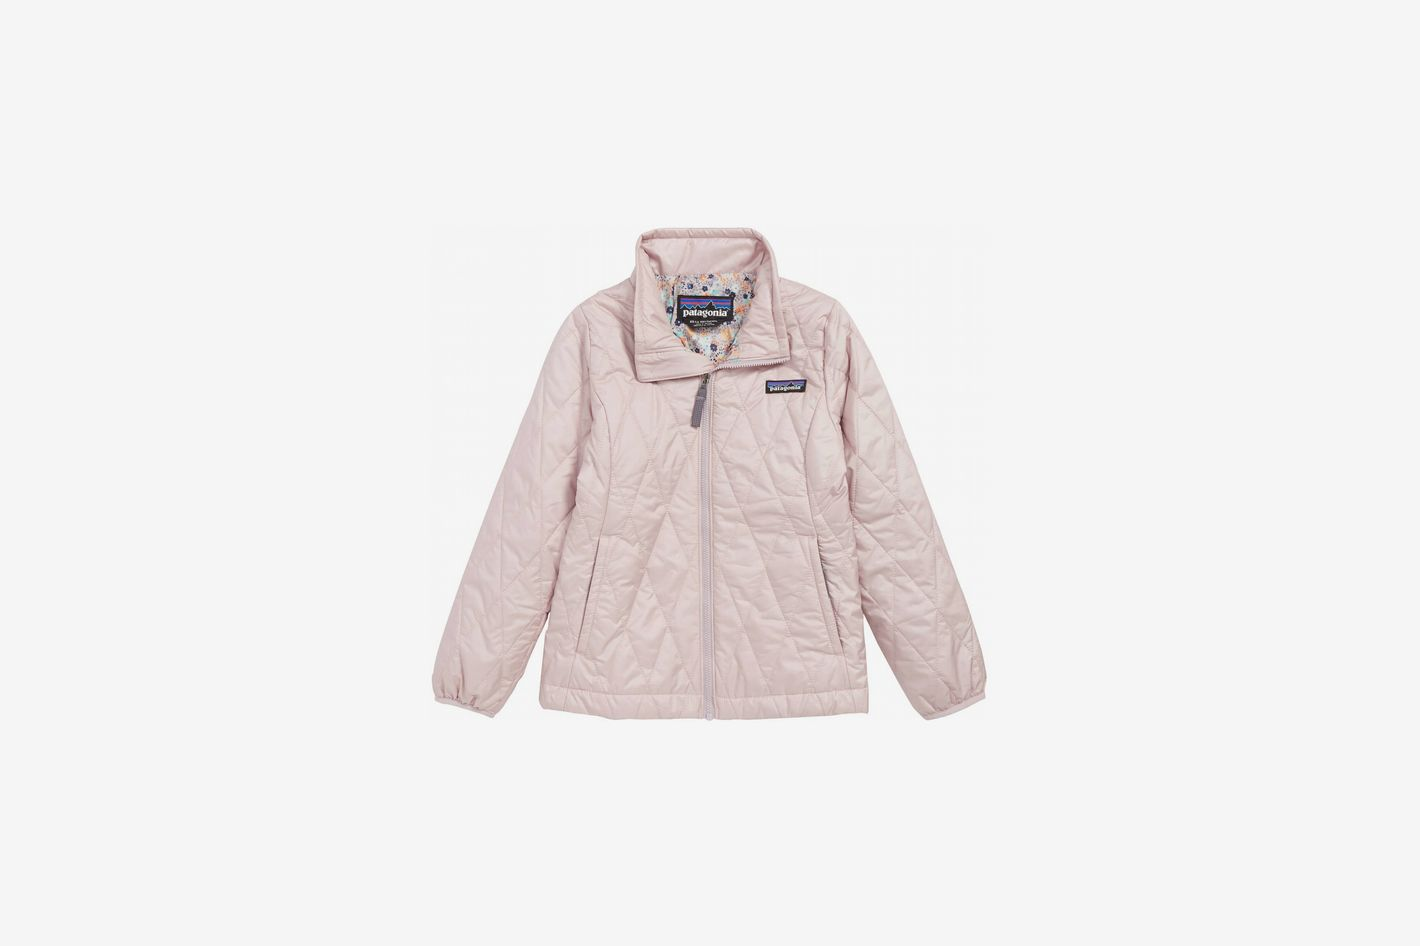 1f6eab56b4f3 16 Patagonia Kids  Jackets on Sale at Nordstrom  2019